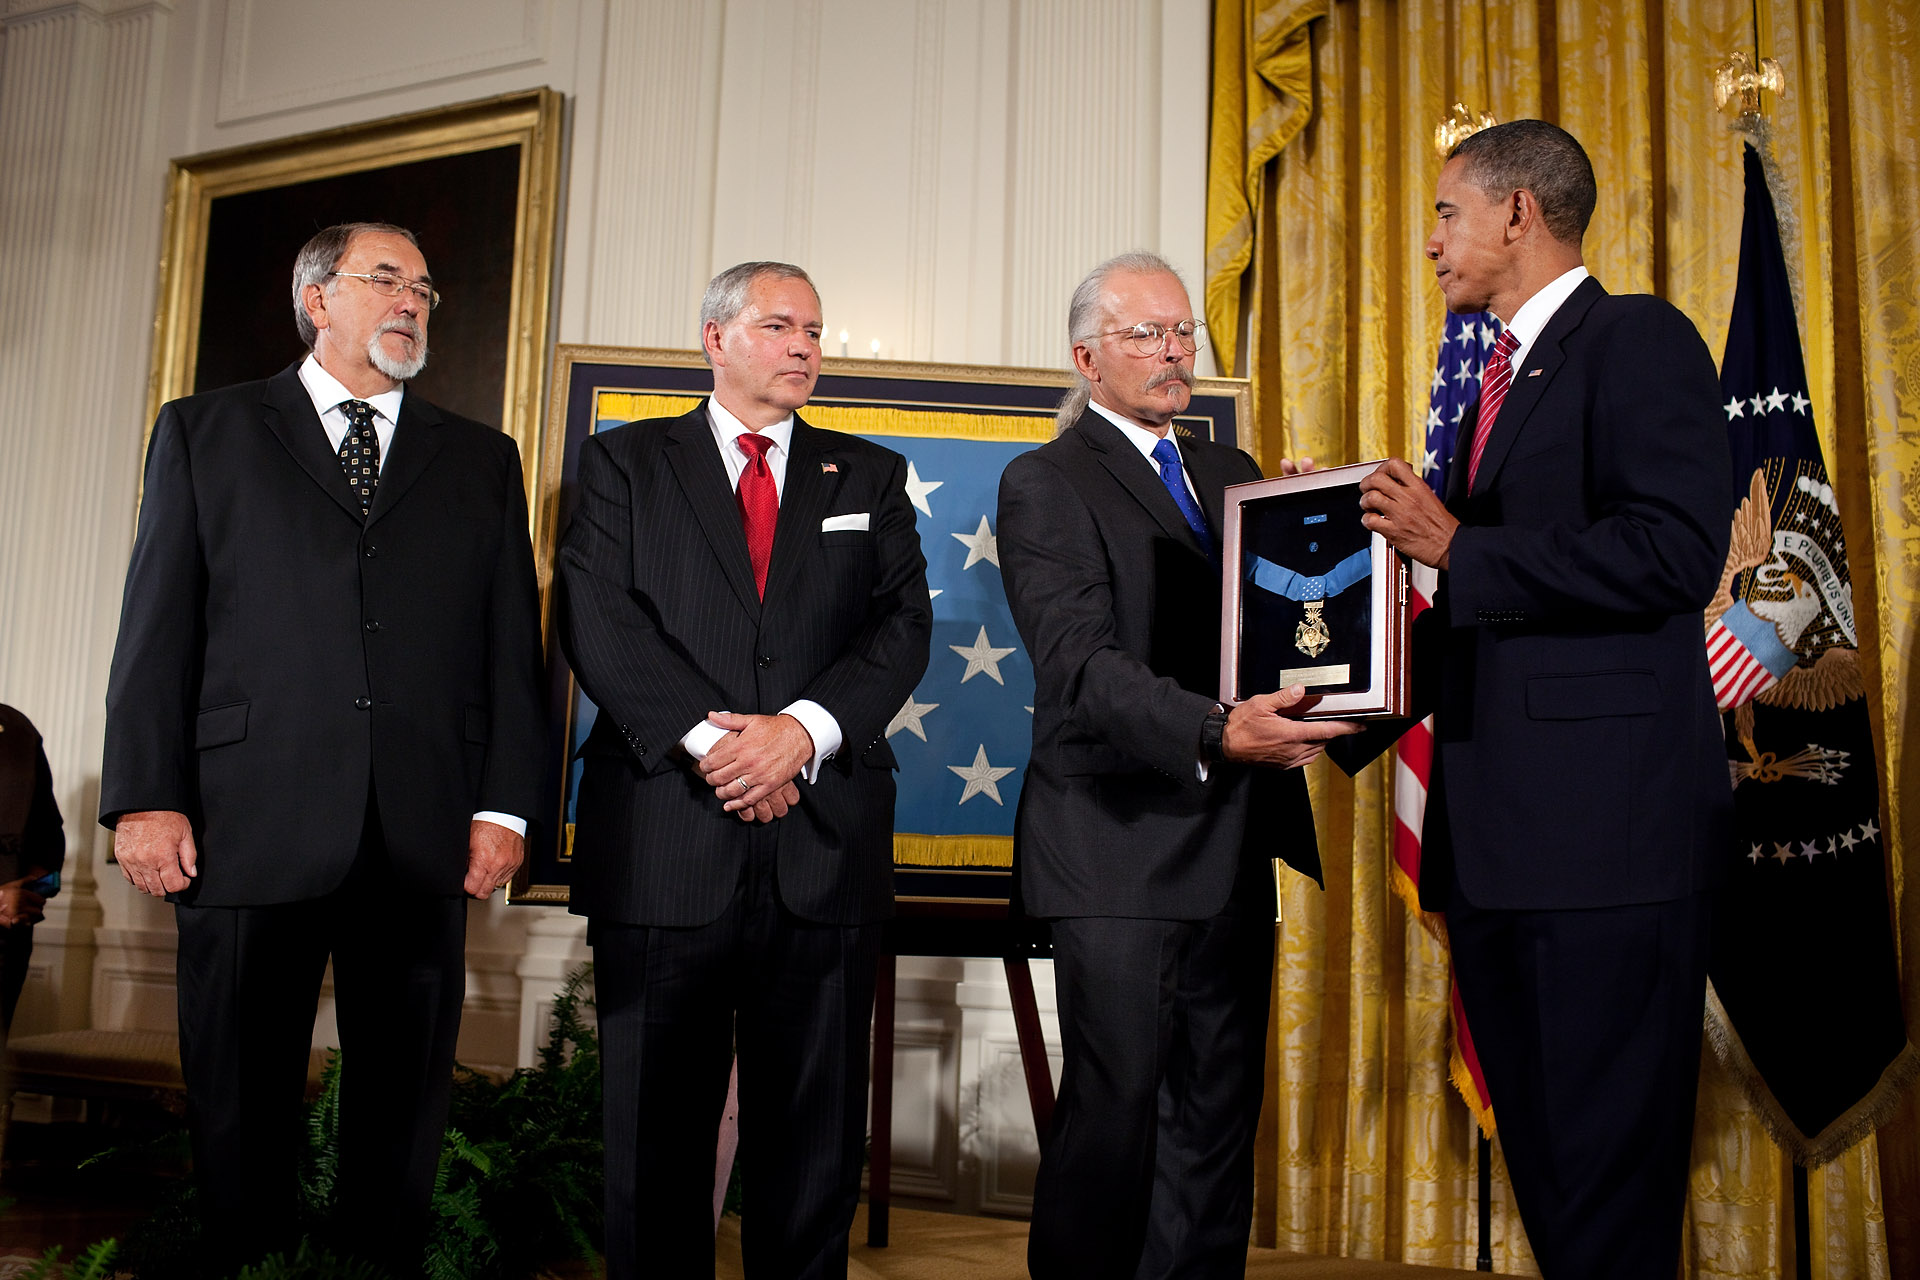 The President Awards Chief Master Sergeant Richard L. Etchberger, U.S. Air Force, the Medal of Honor